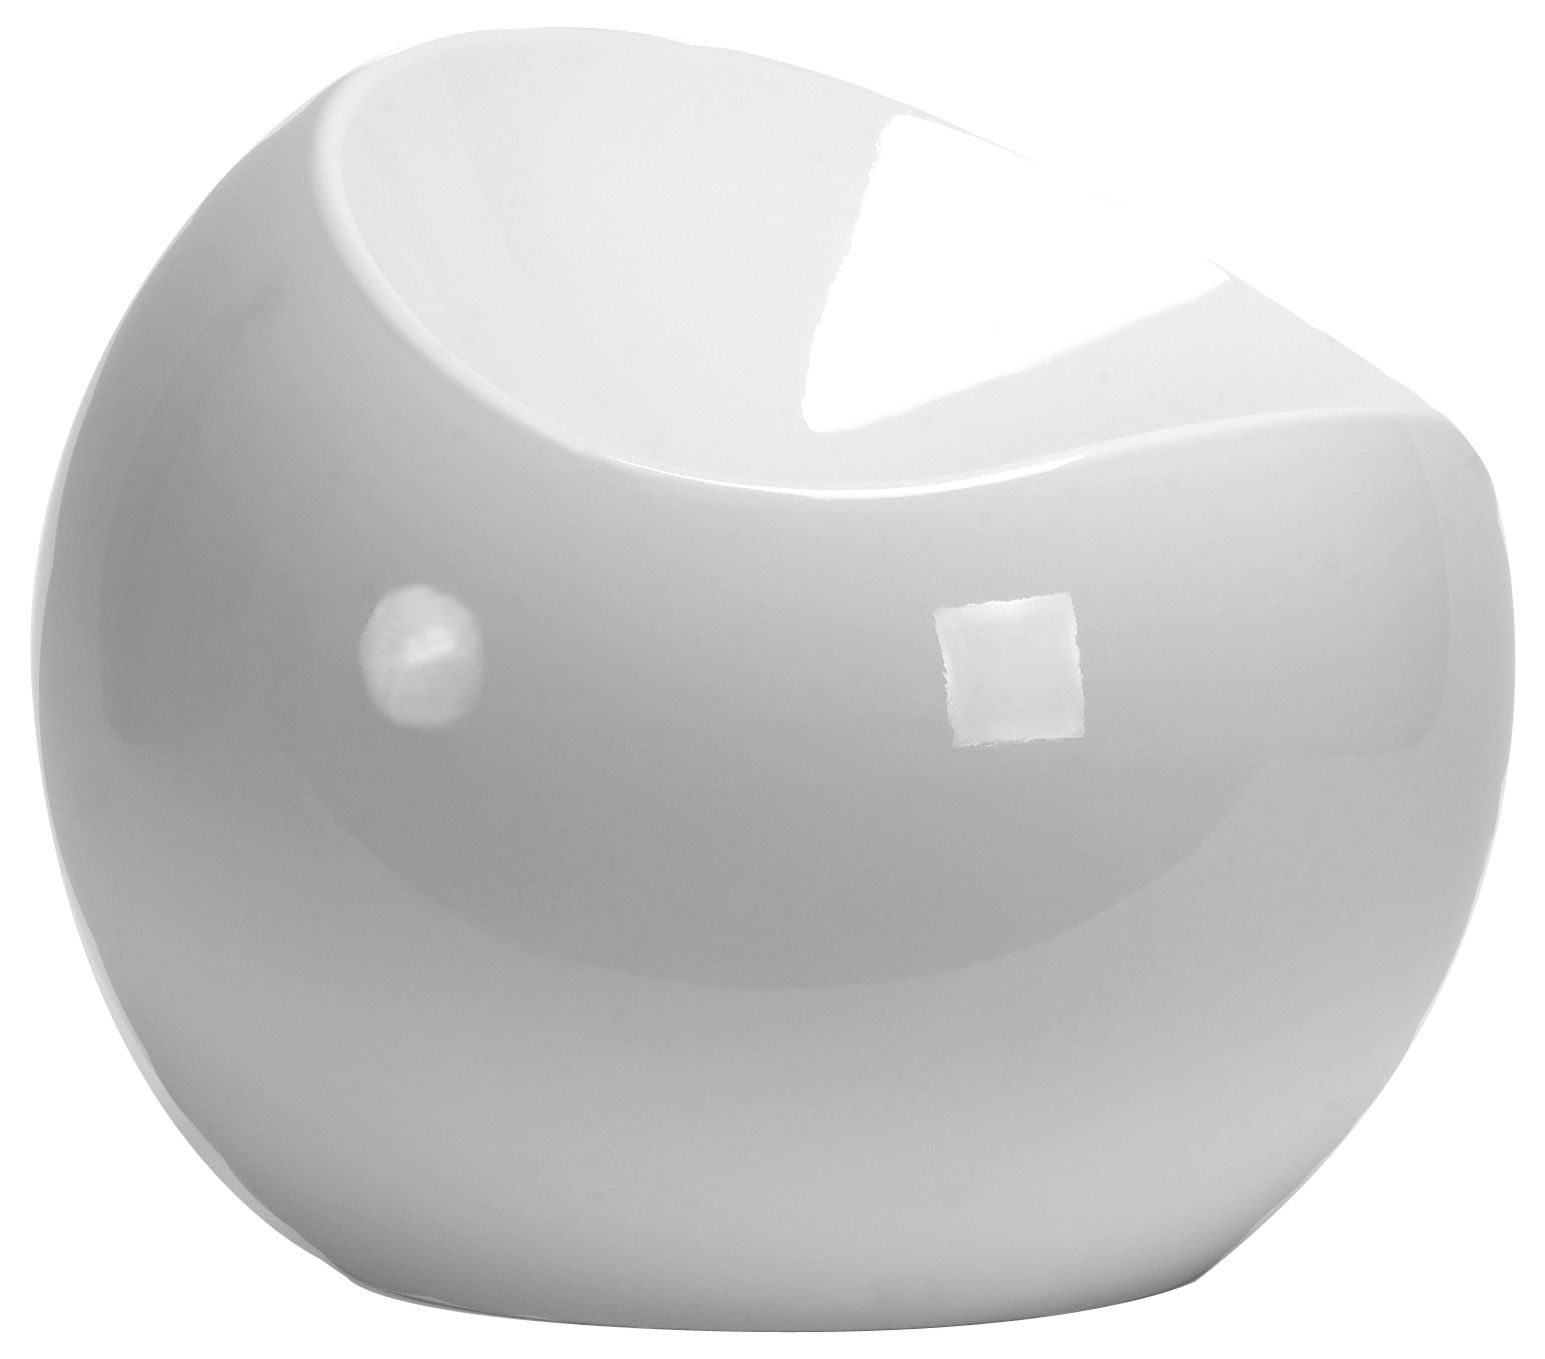 Furniture - Teen furniture - Ball Chair Pouf by XL Boom - White - Lacquered ABS